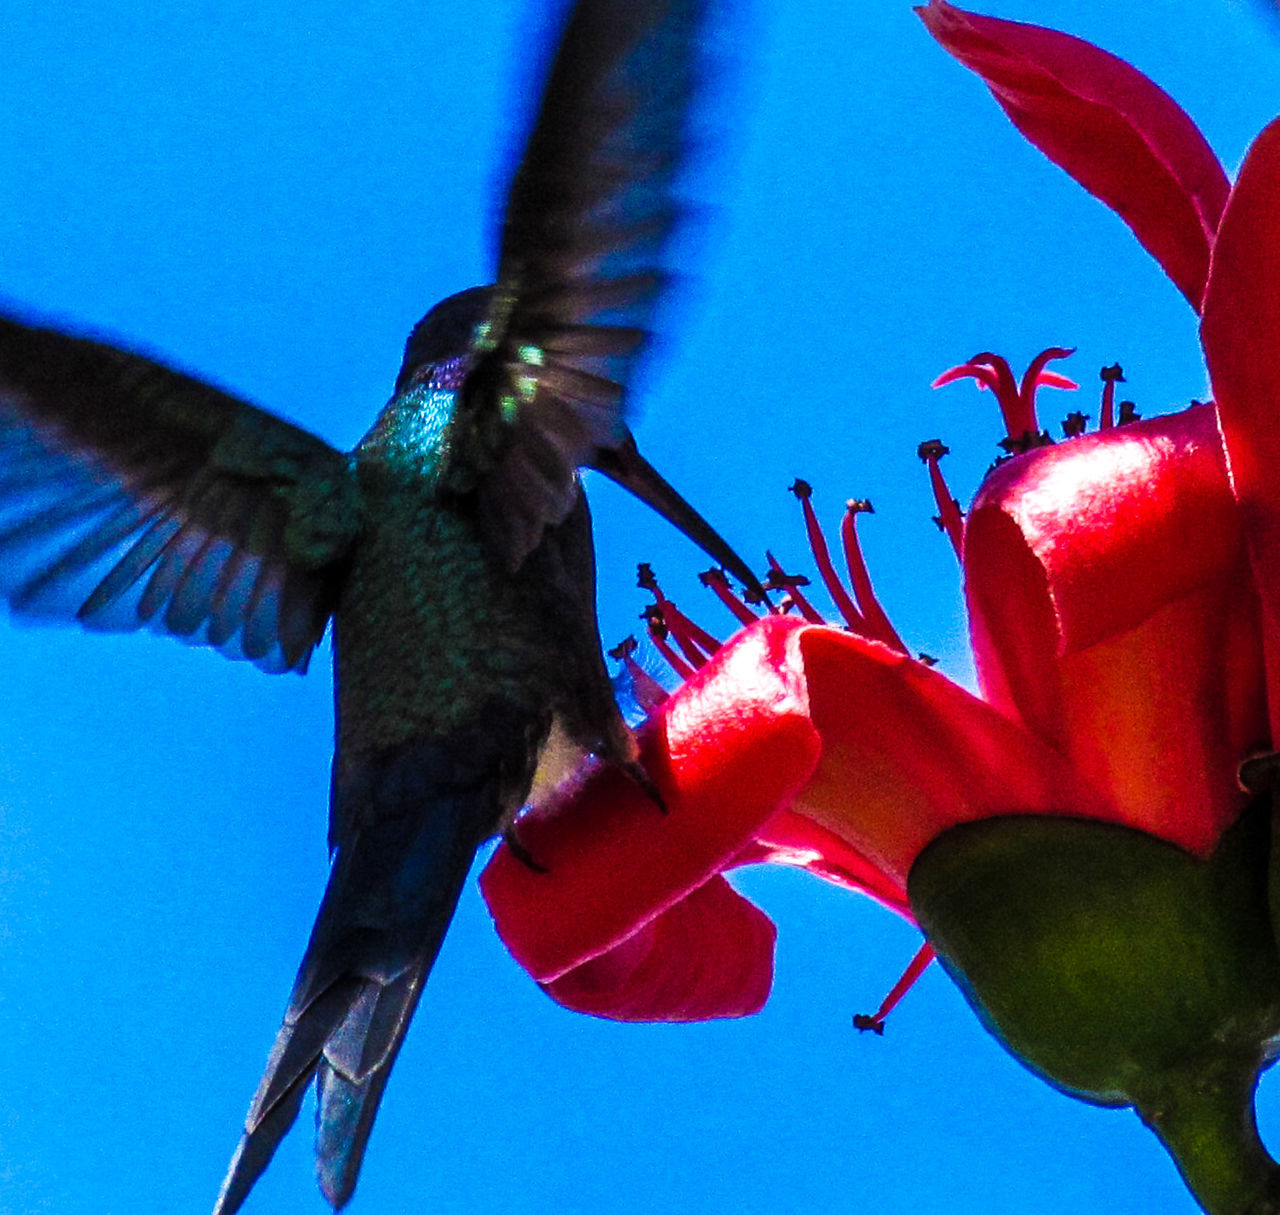 Animal Themes Animals In The Wild Beauty In Nature Bird Blooming Butterfly - Insect Close-up Day Flower Flower Head Fragility Freshness Hummingbird Insect Low Angle View Nature No People One Animal Outdoors Petal Plant Pollination Red Sky Spread Wings